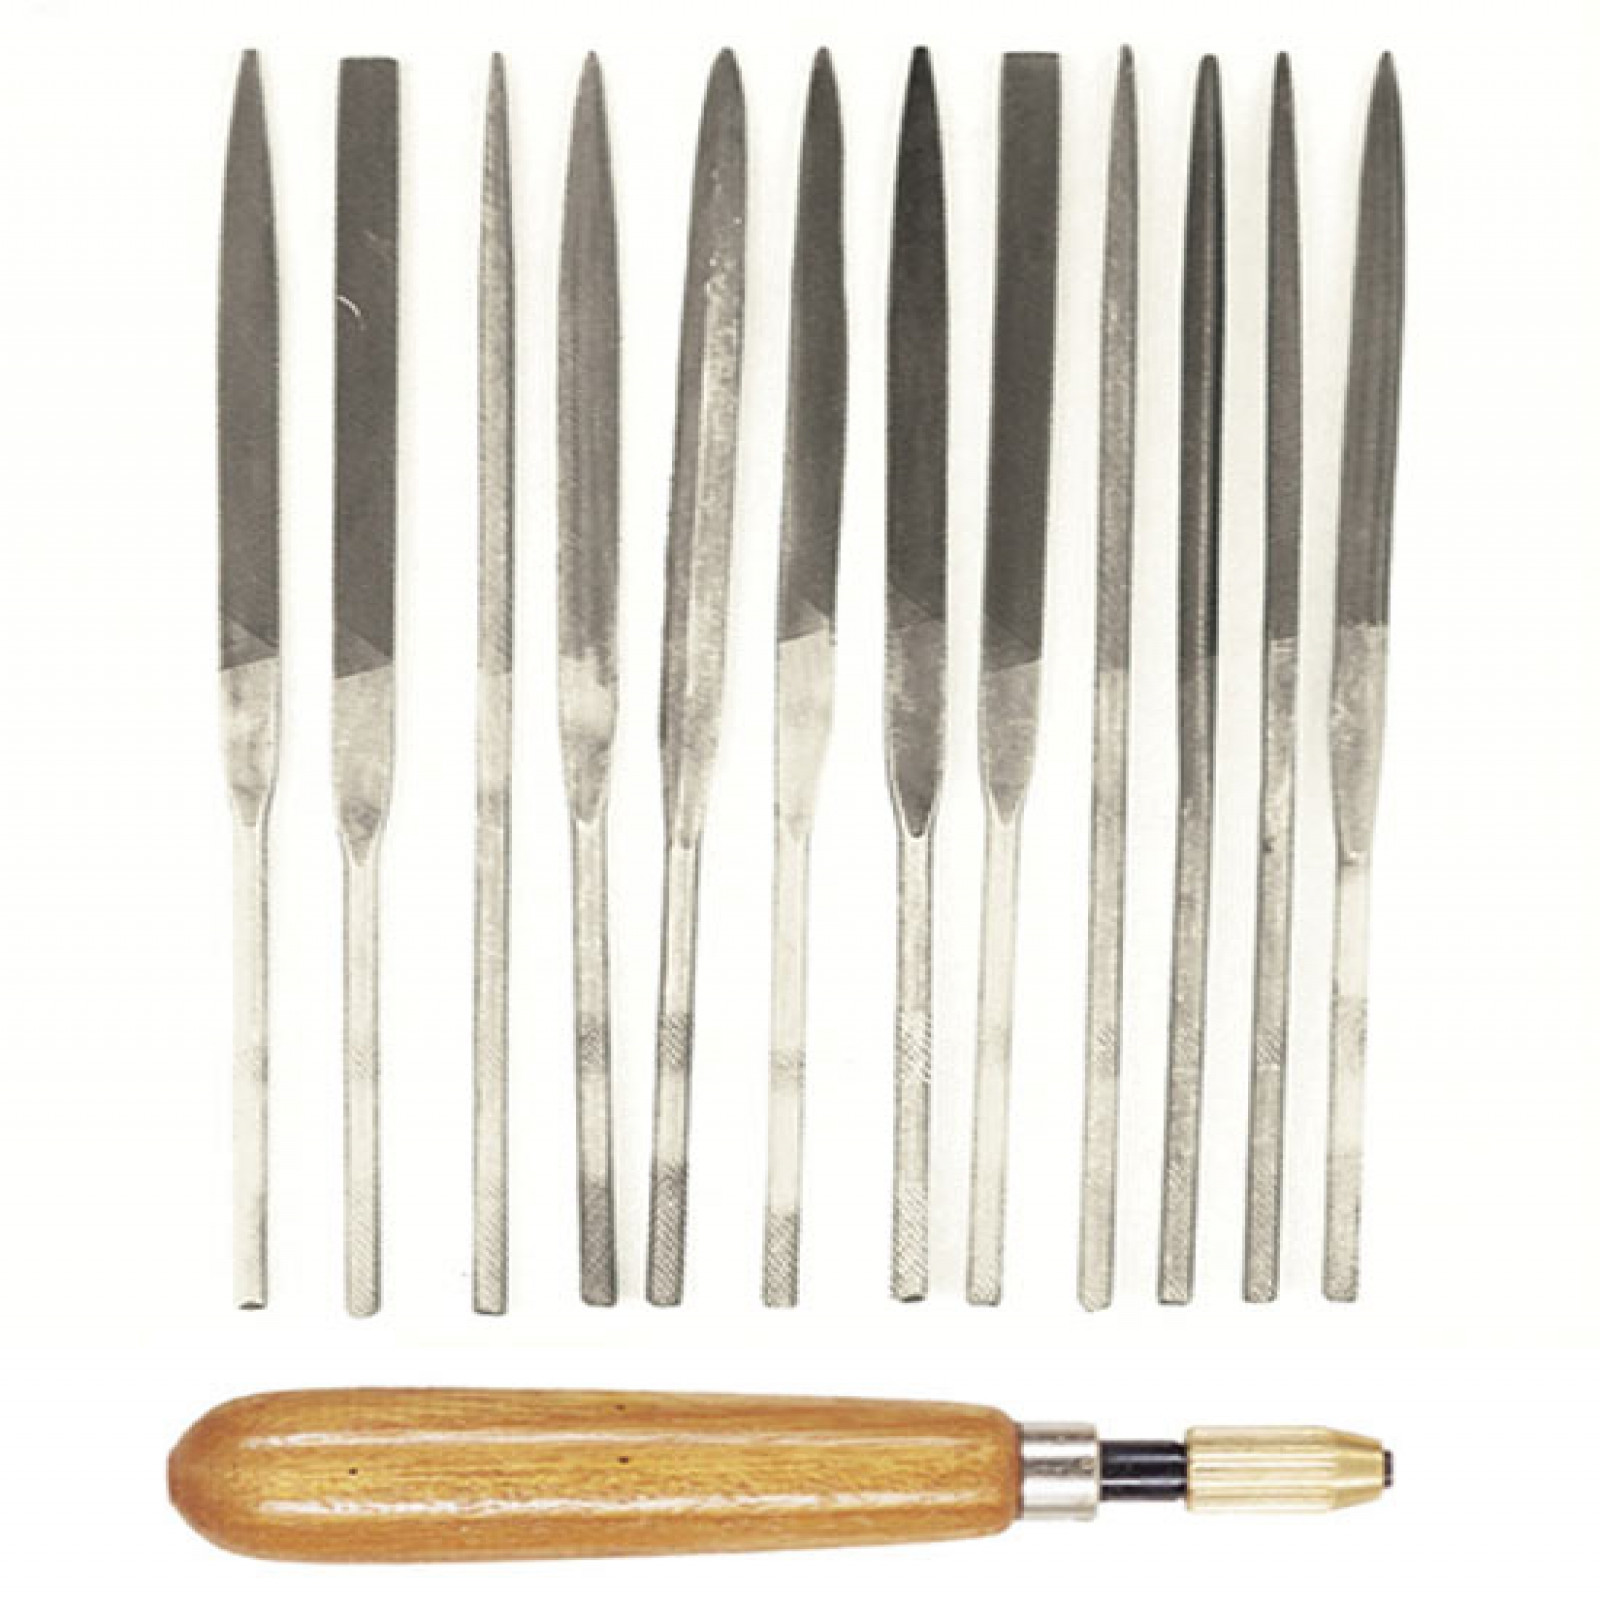 12-PC. NEEDLE FILE SET WITH WOOD HANDLE